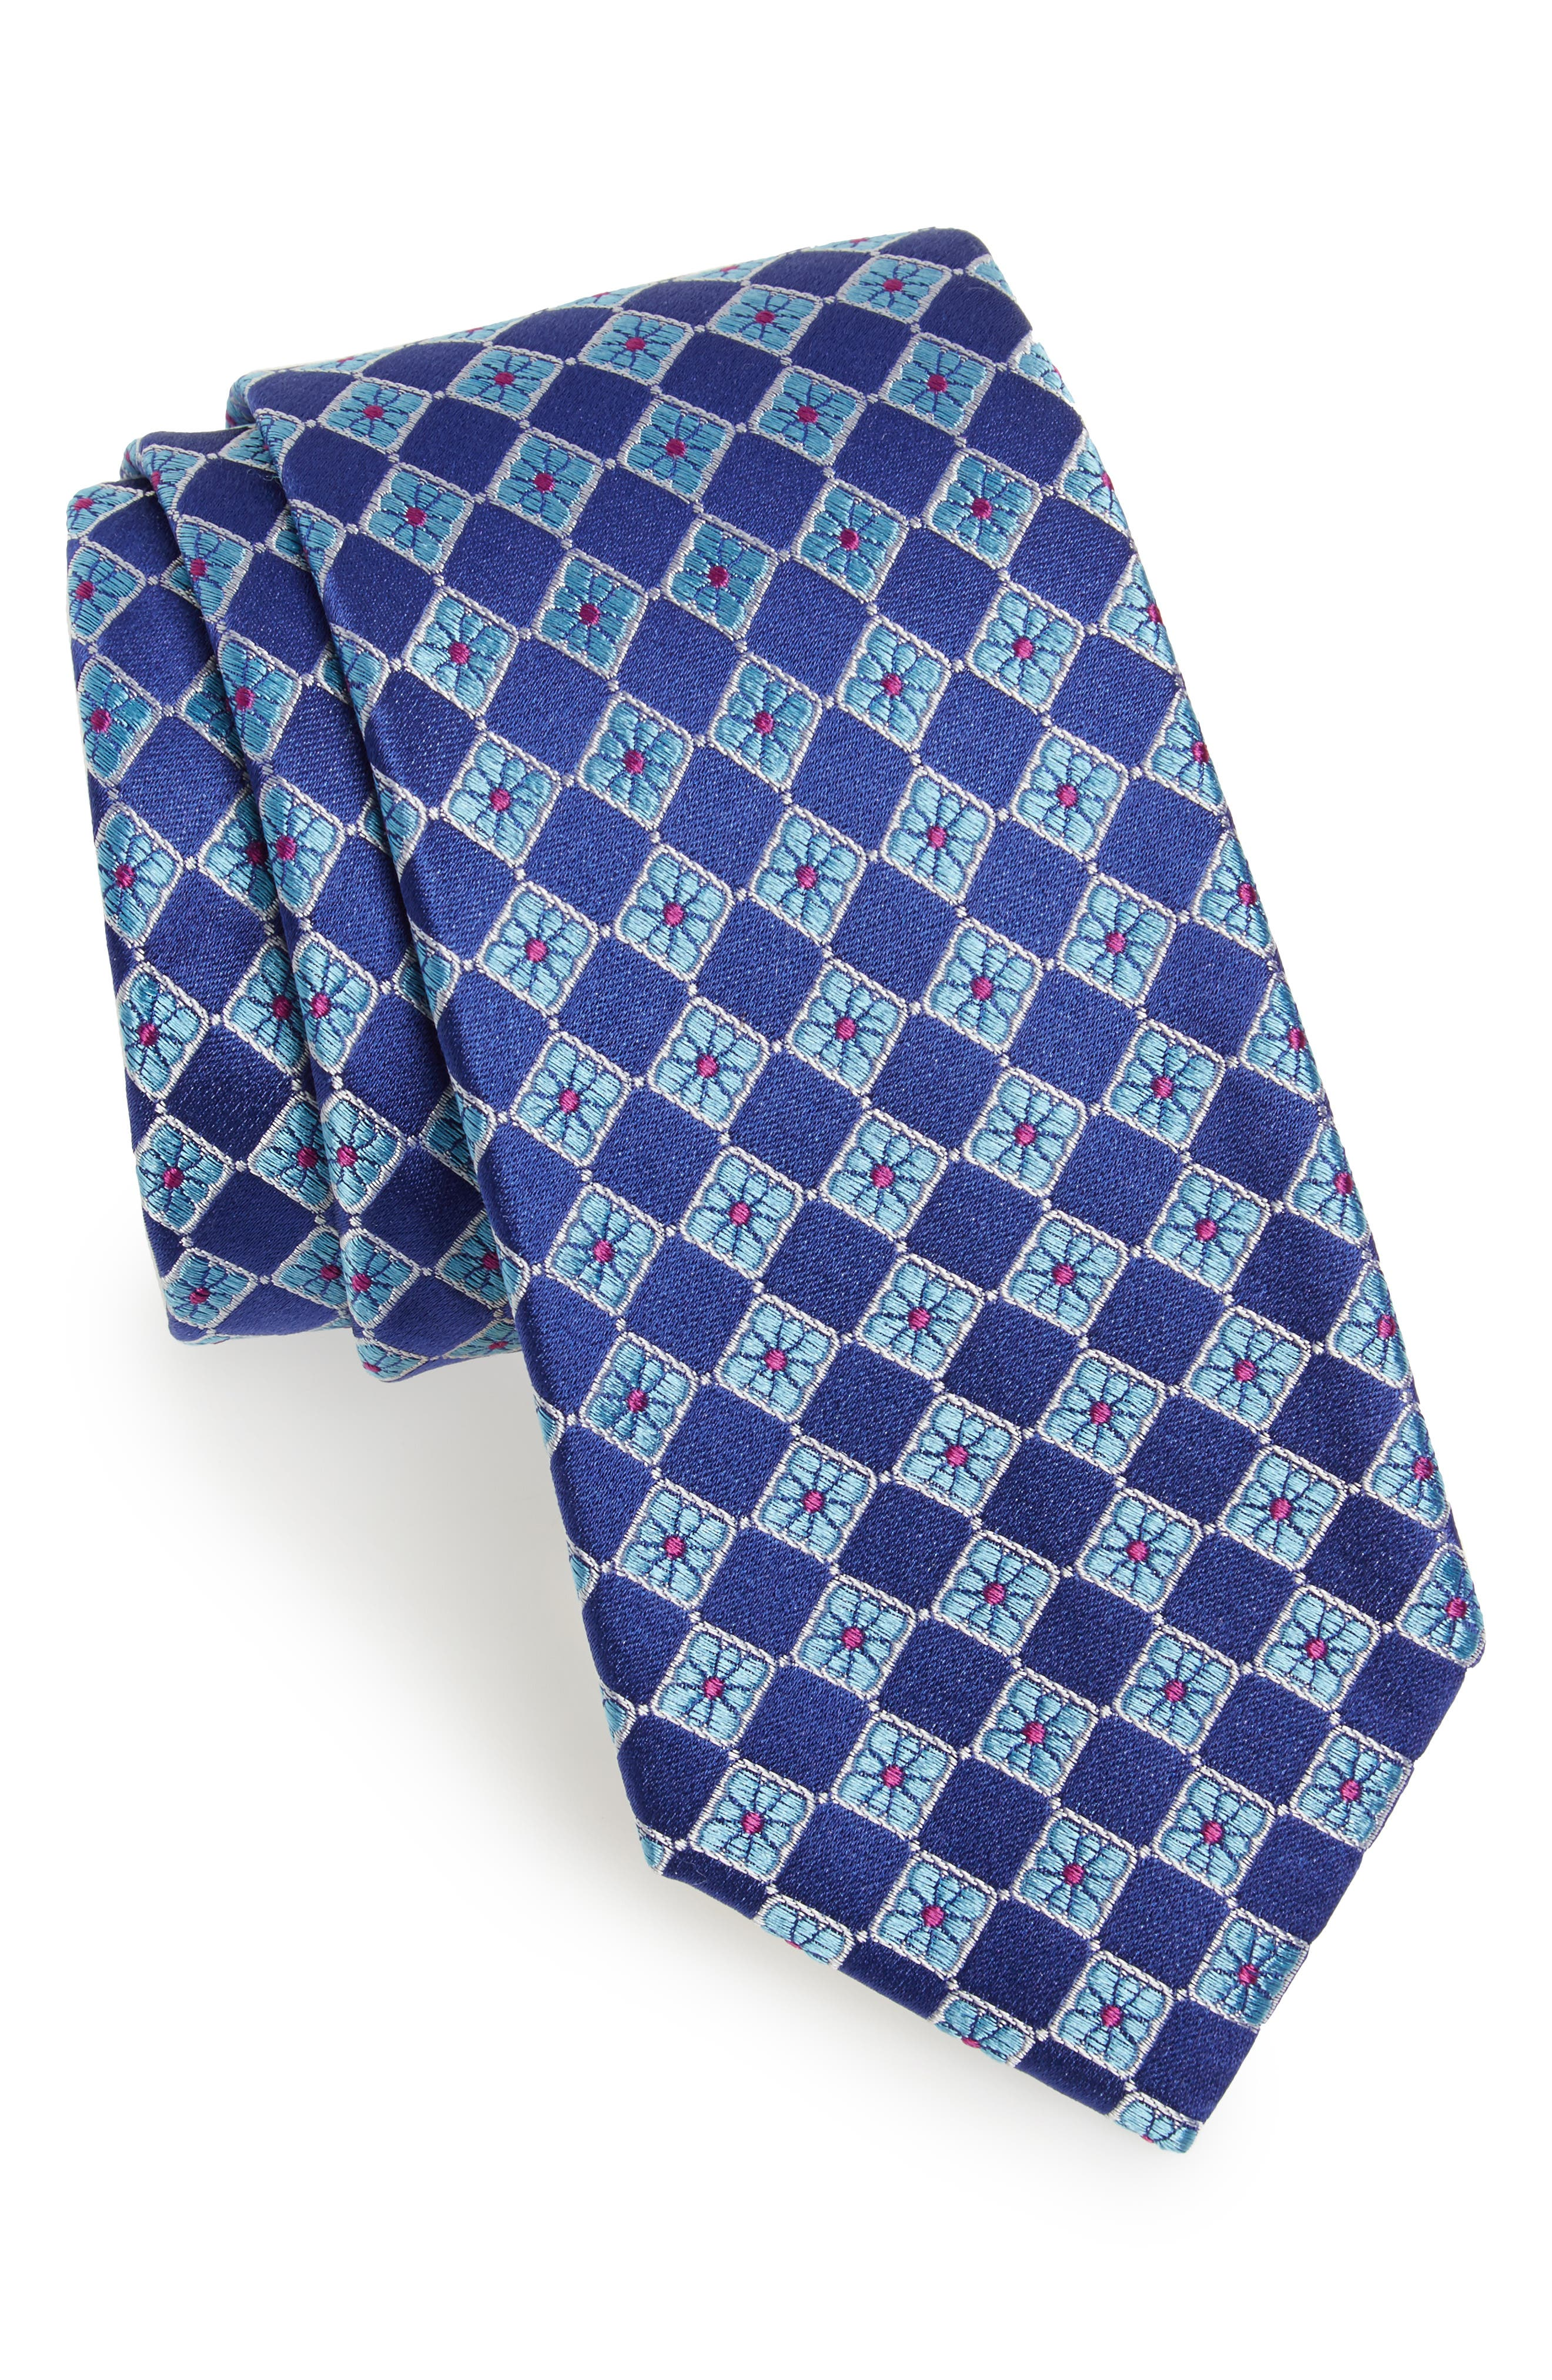 Alternate Image 1 Selected - Nordstrom Men's Shop Floral Squares Silk Tie